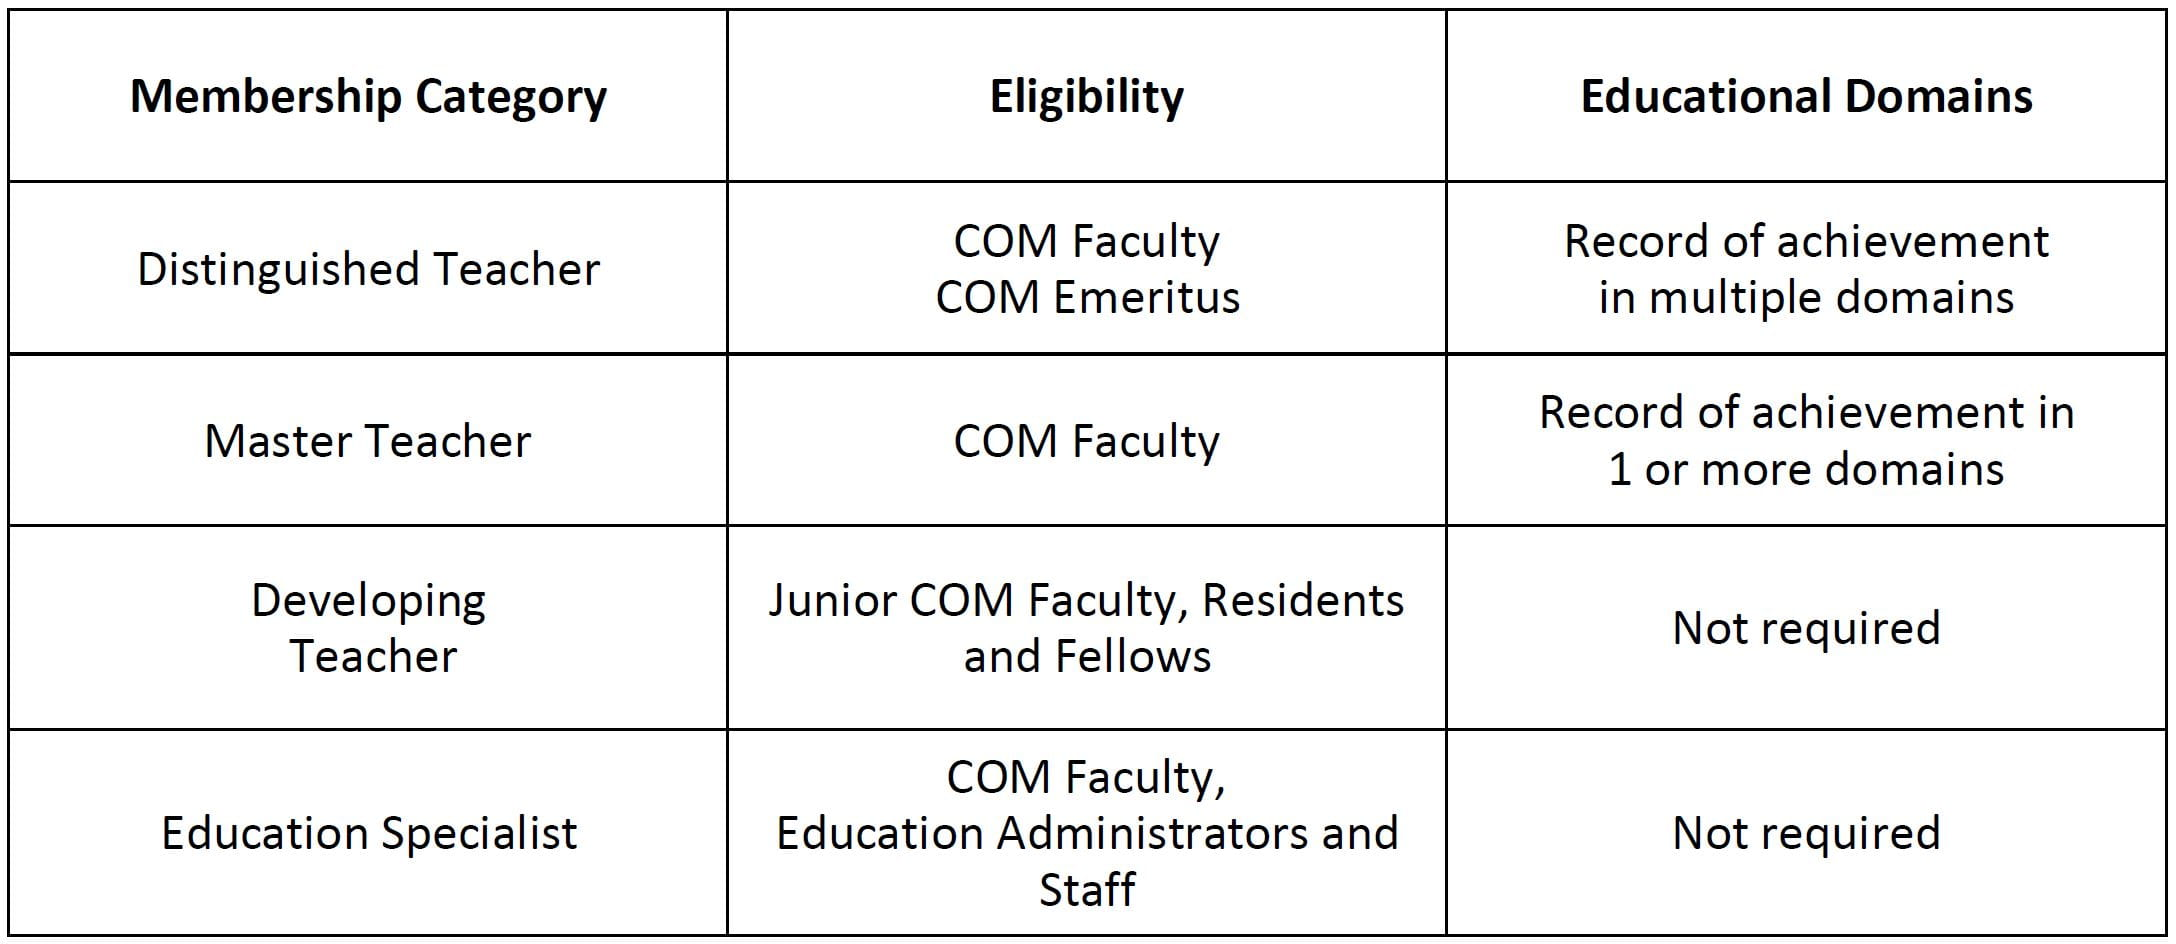 Table describing the Academy of Medical Educators membership ranking